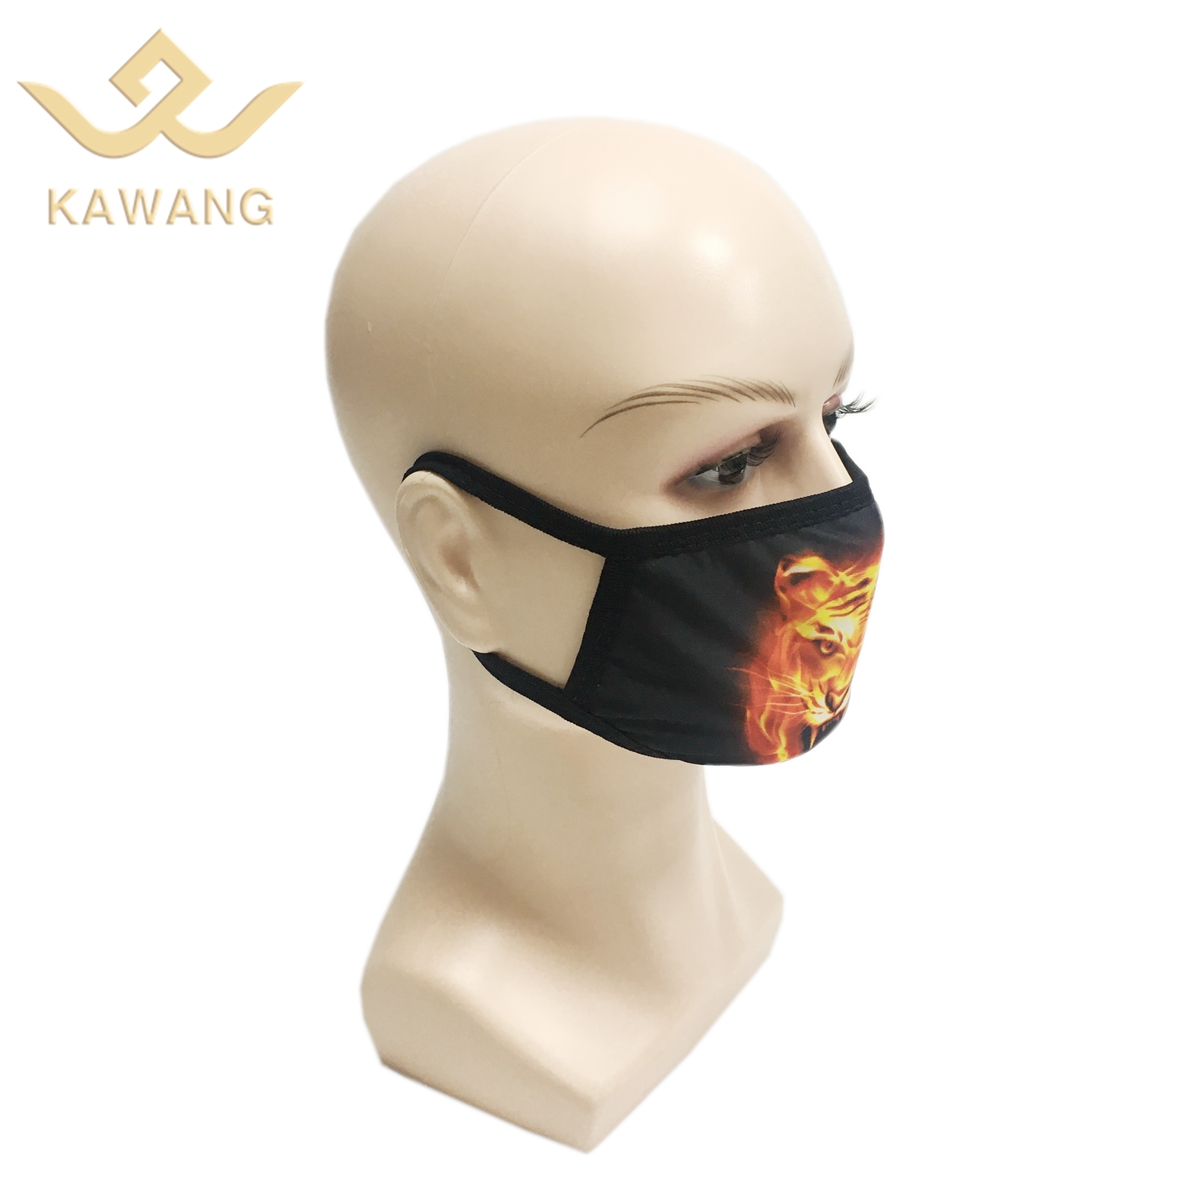 Washable air pollution cloth mask stylish decoration party masks